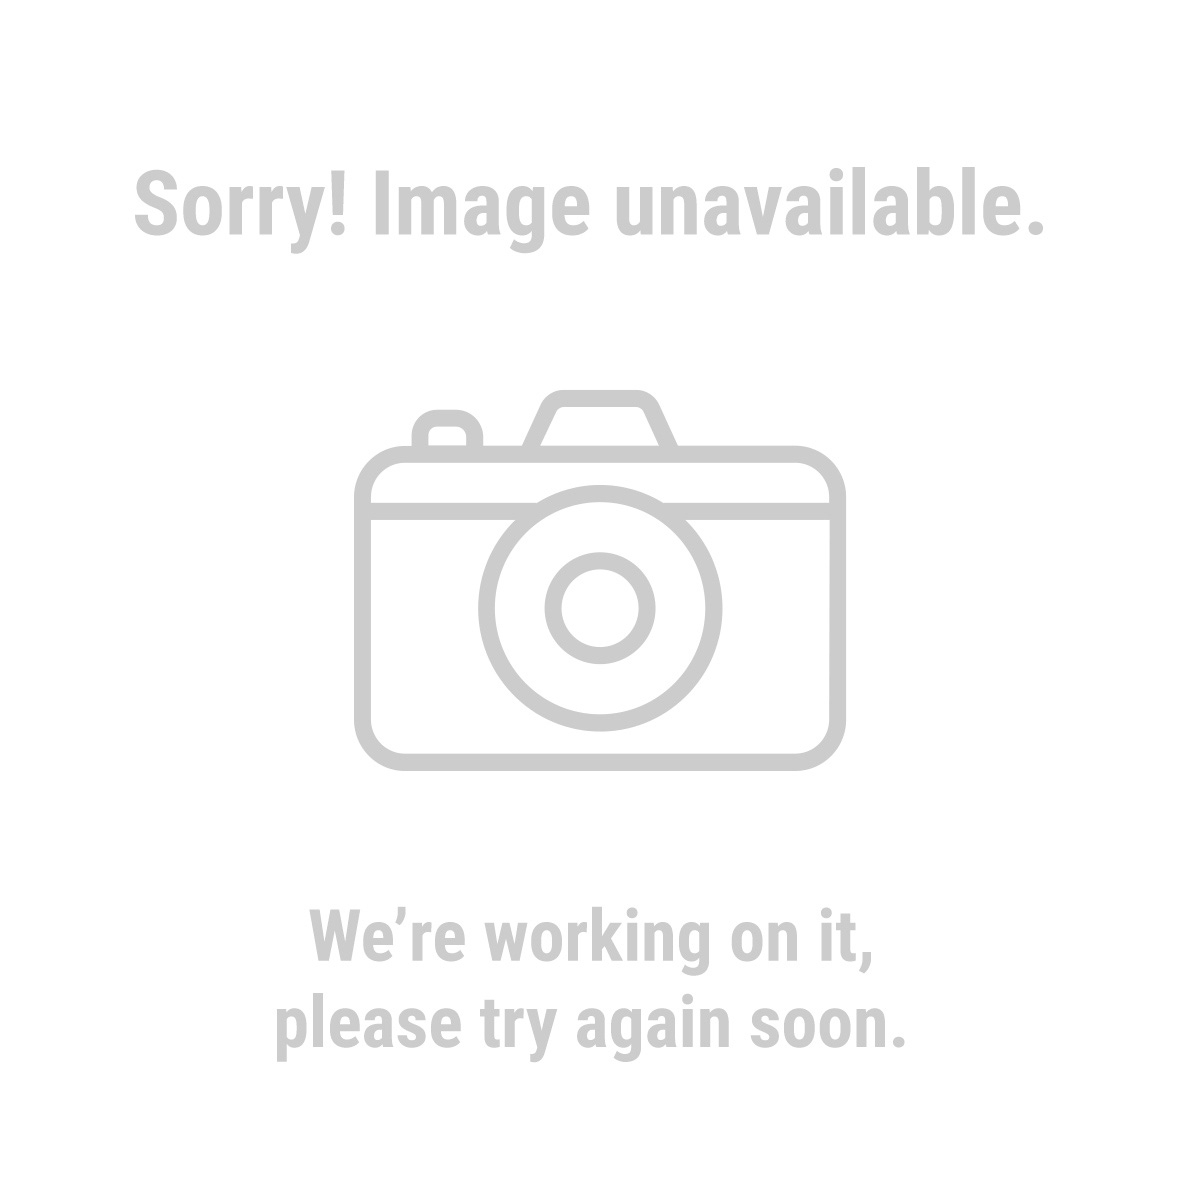 Western Safety 95544 1/2 Finger Antivibration Gloves - Large